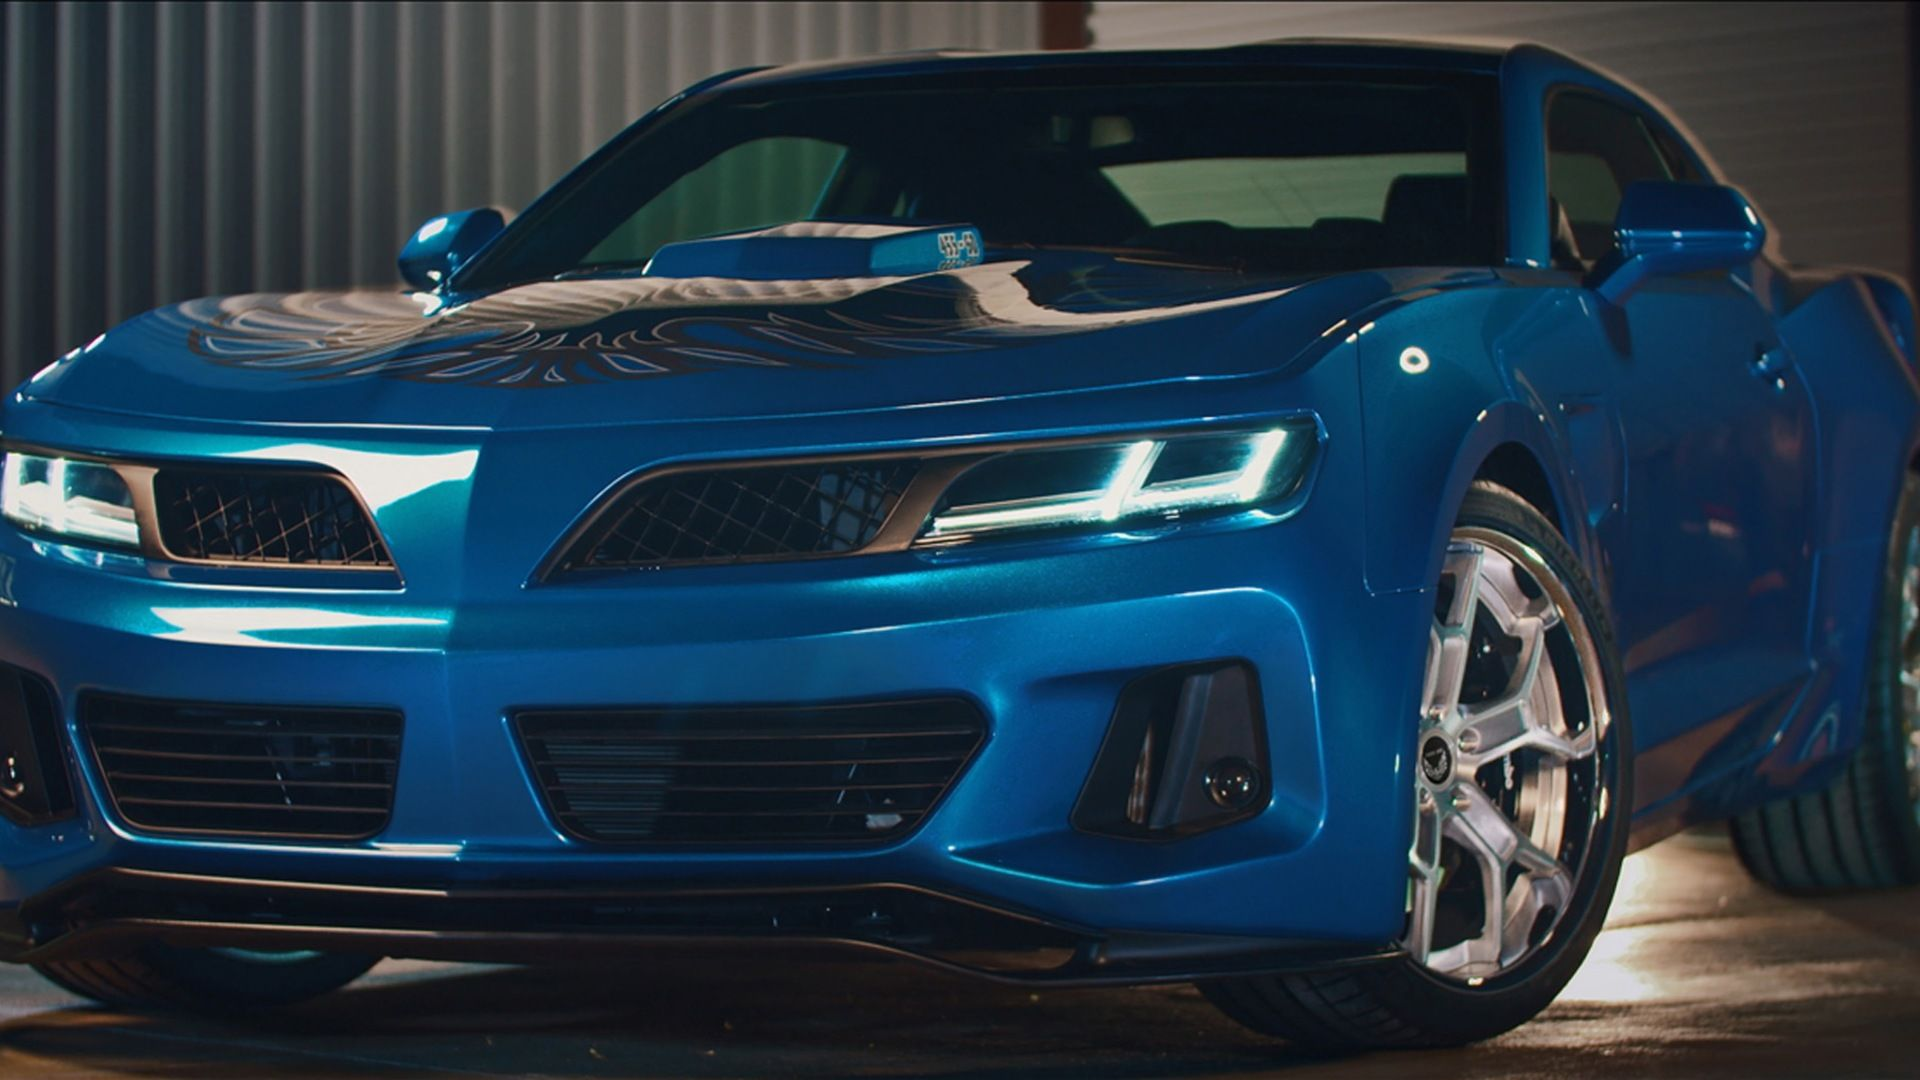 6thgen Camaro Trans Am conversion comes packing 1,000